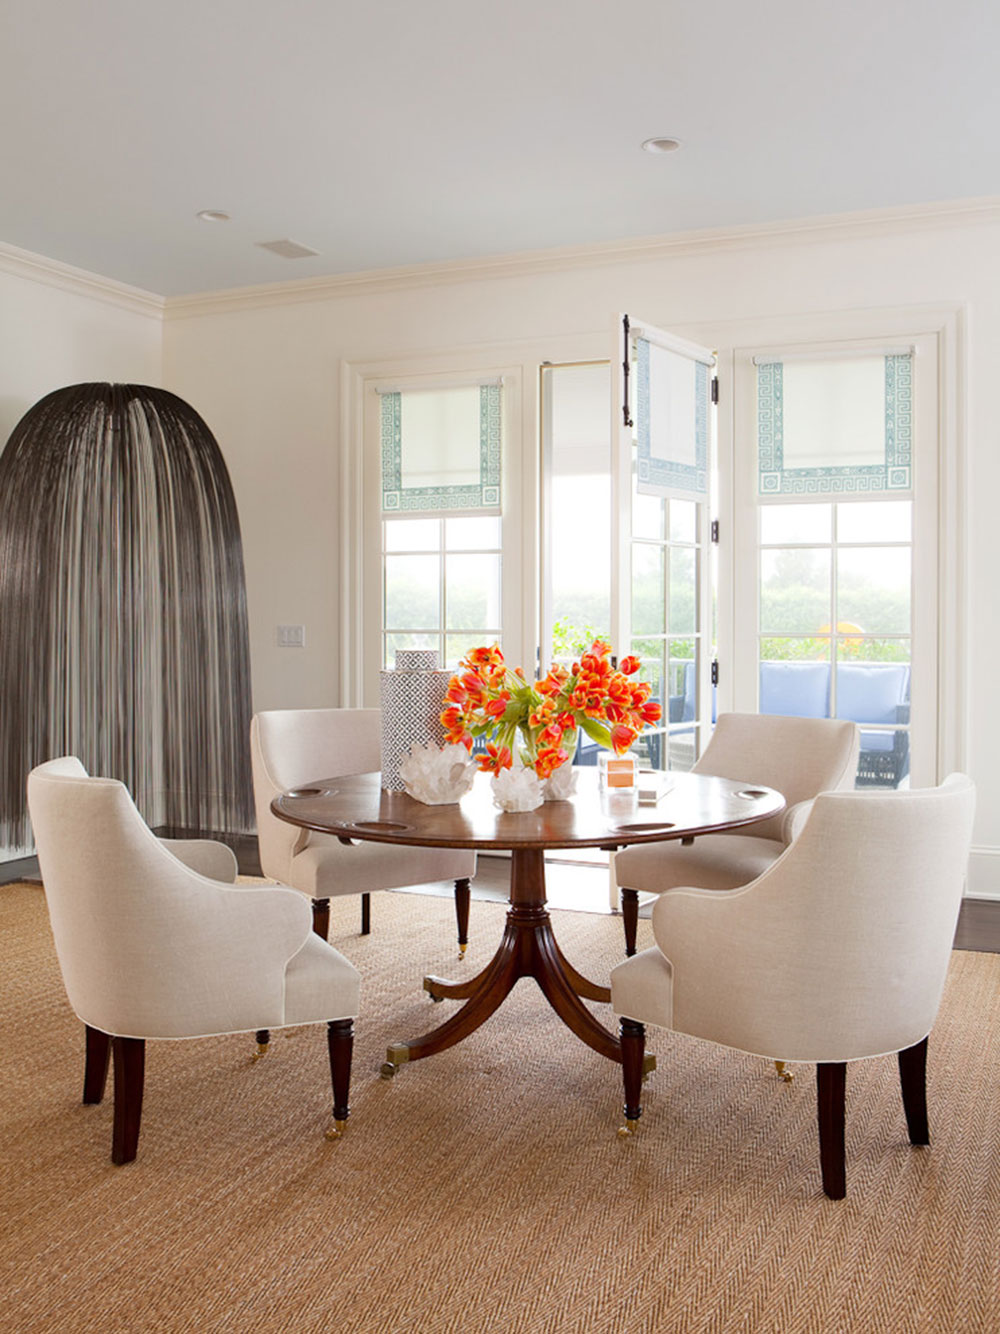 Window treatments for French doors11 Window treatments for French doors